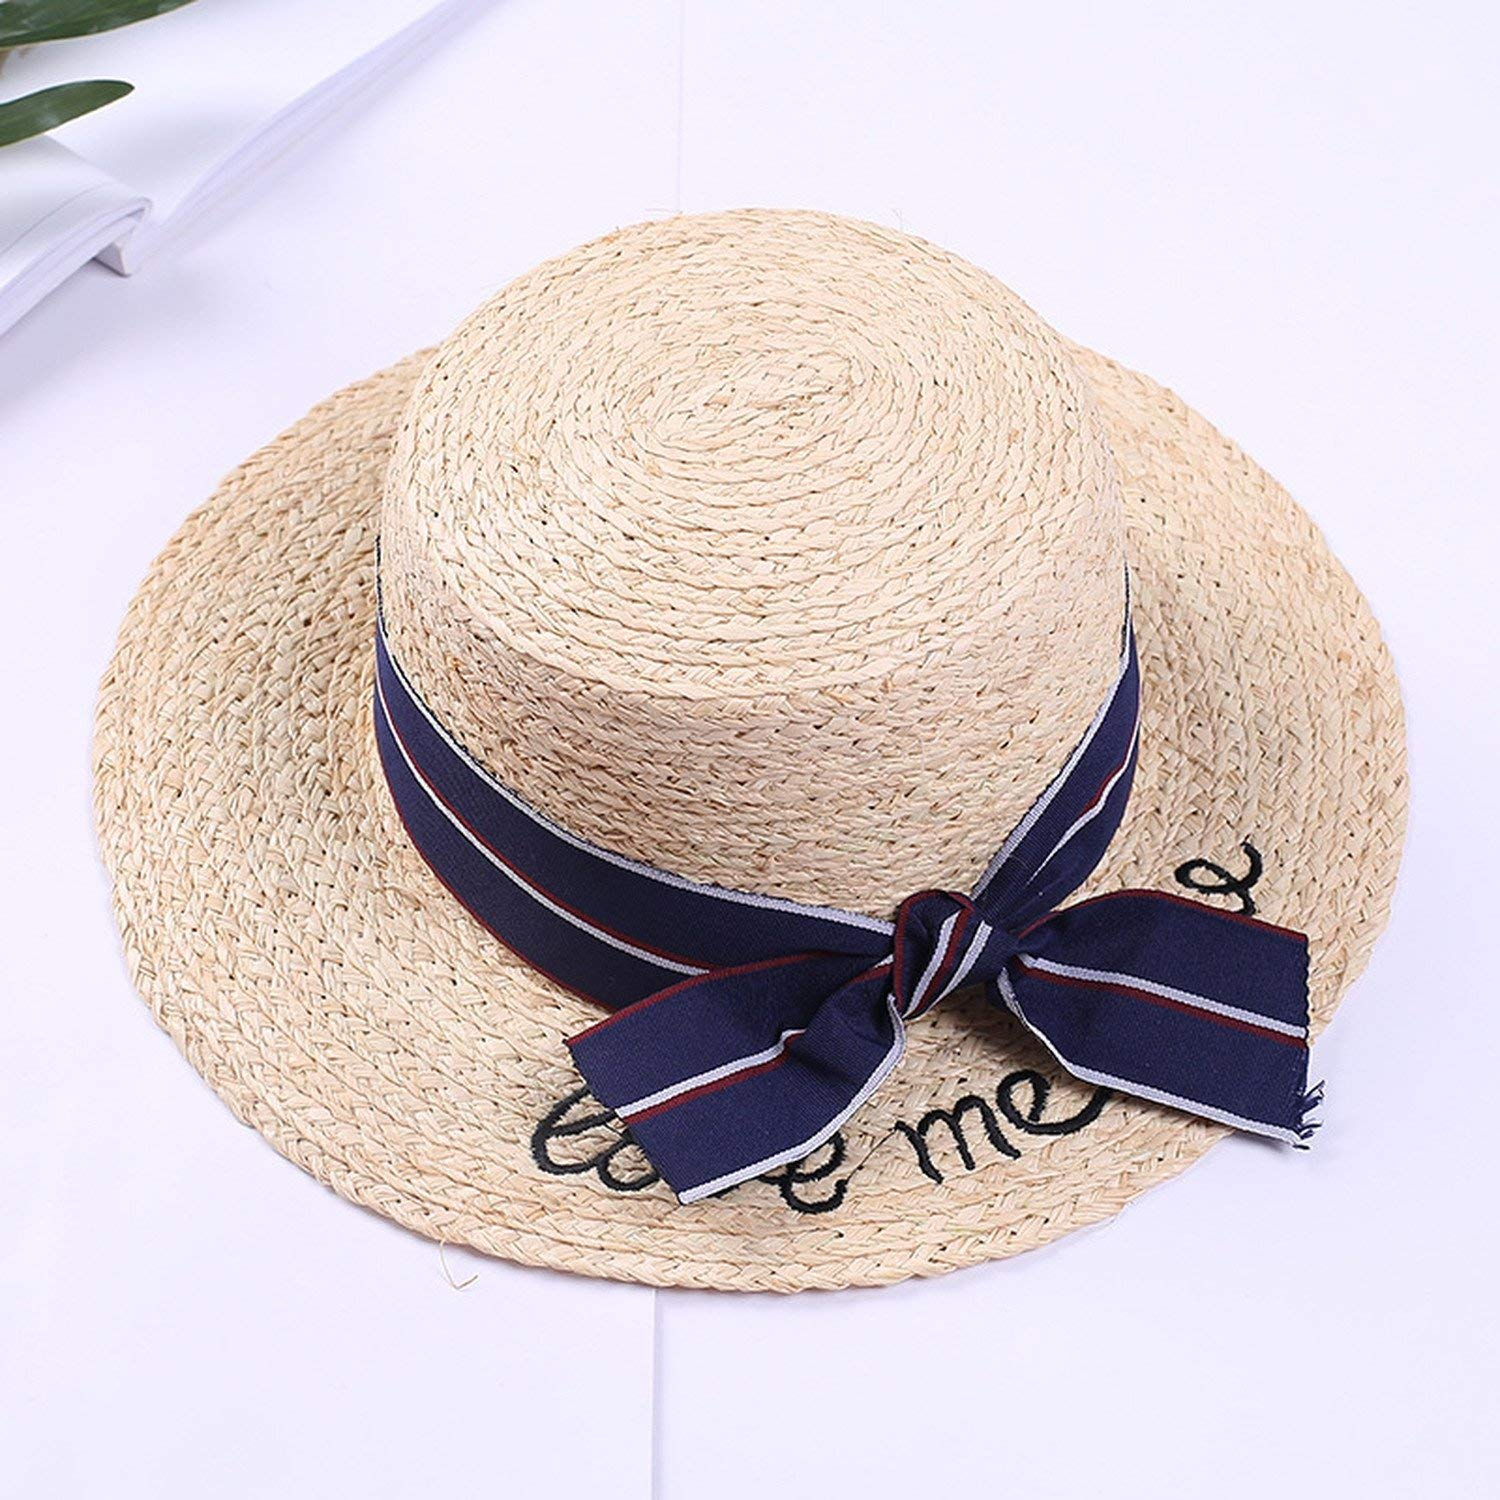 0899126b9a6 Get Quotations · Ladies straw hat Rafi Grass Flat top Hat Summer Sun Hat  Vacation Hat Fashion Bow straw